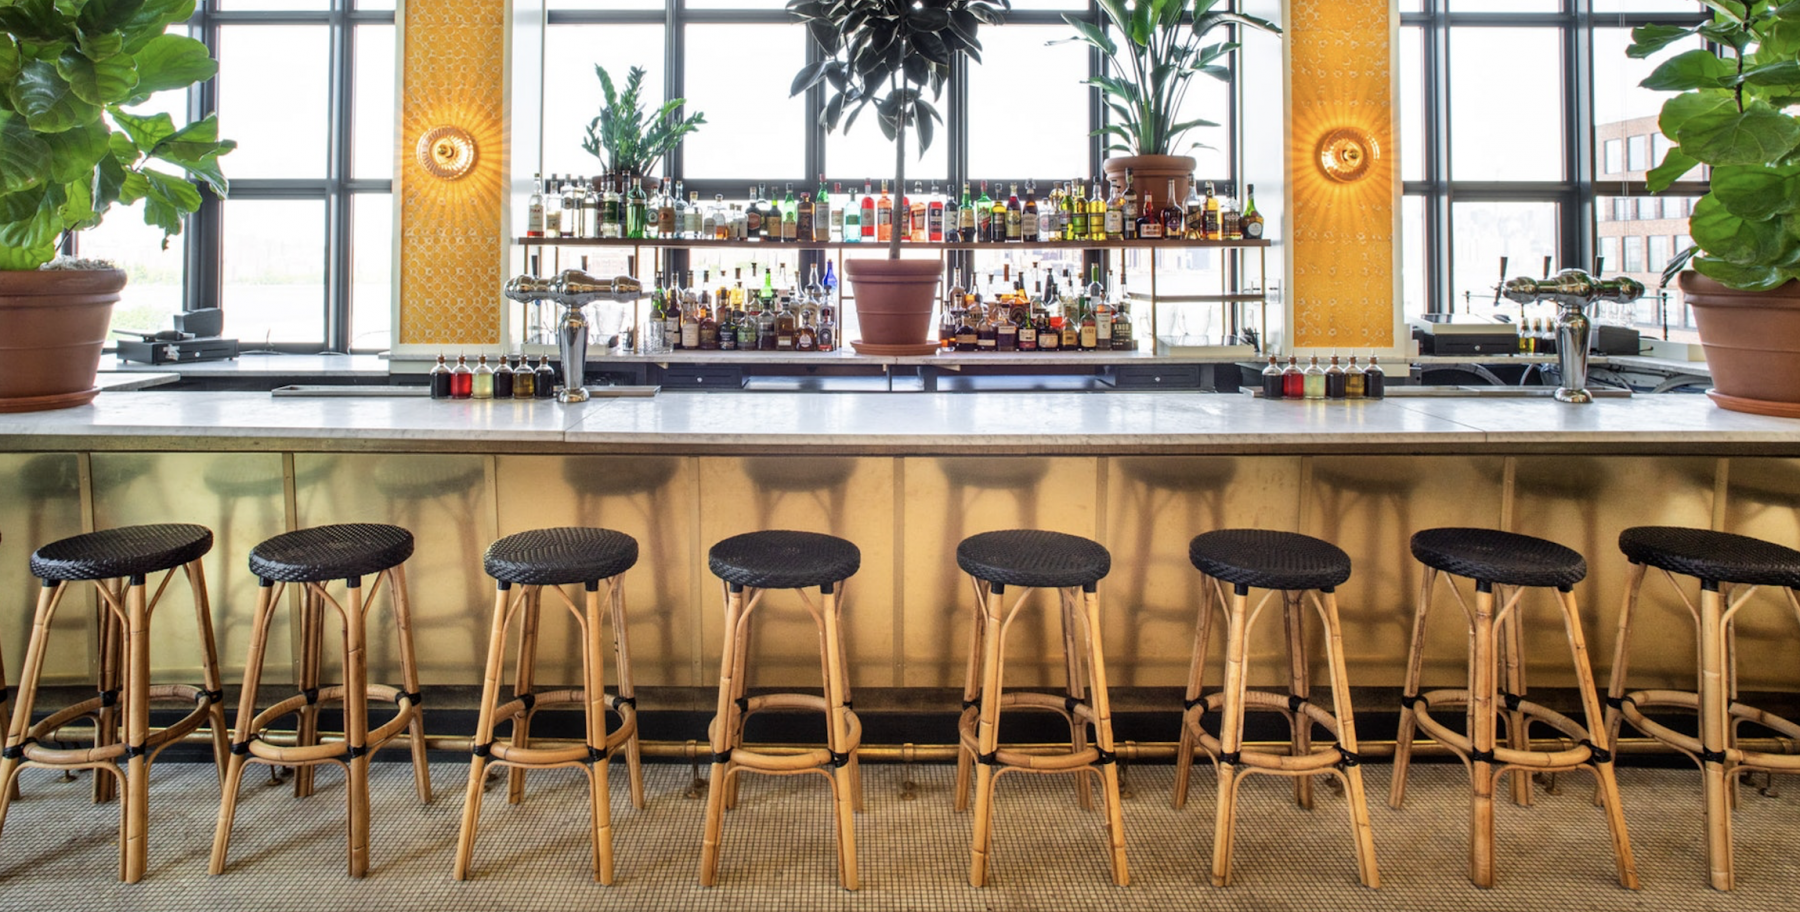 Lemon's at Wythe Hotel is the Place to See and Be Seen This Summer